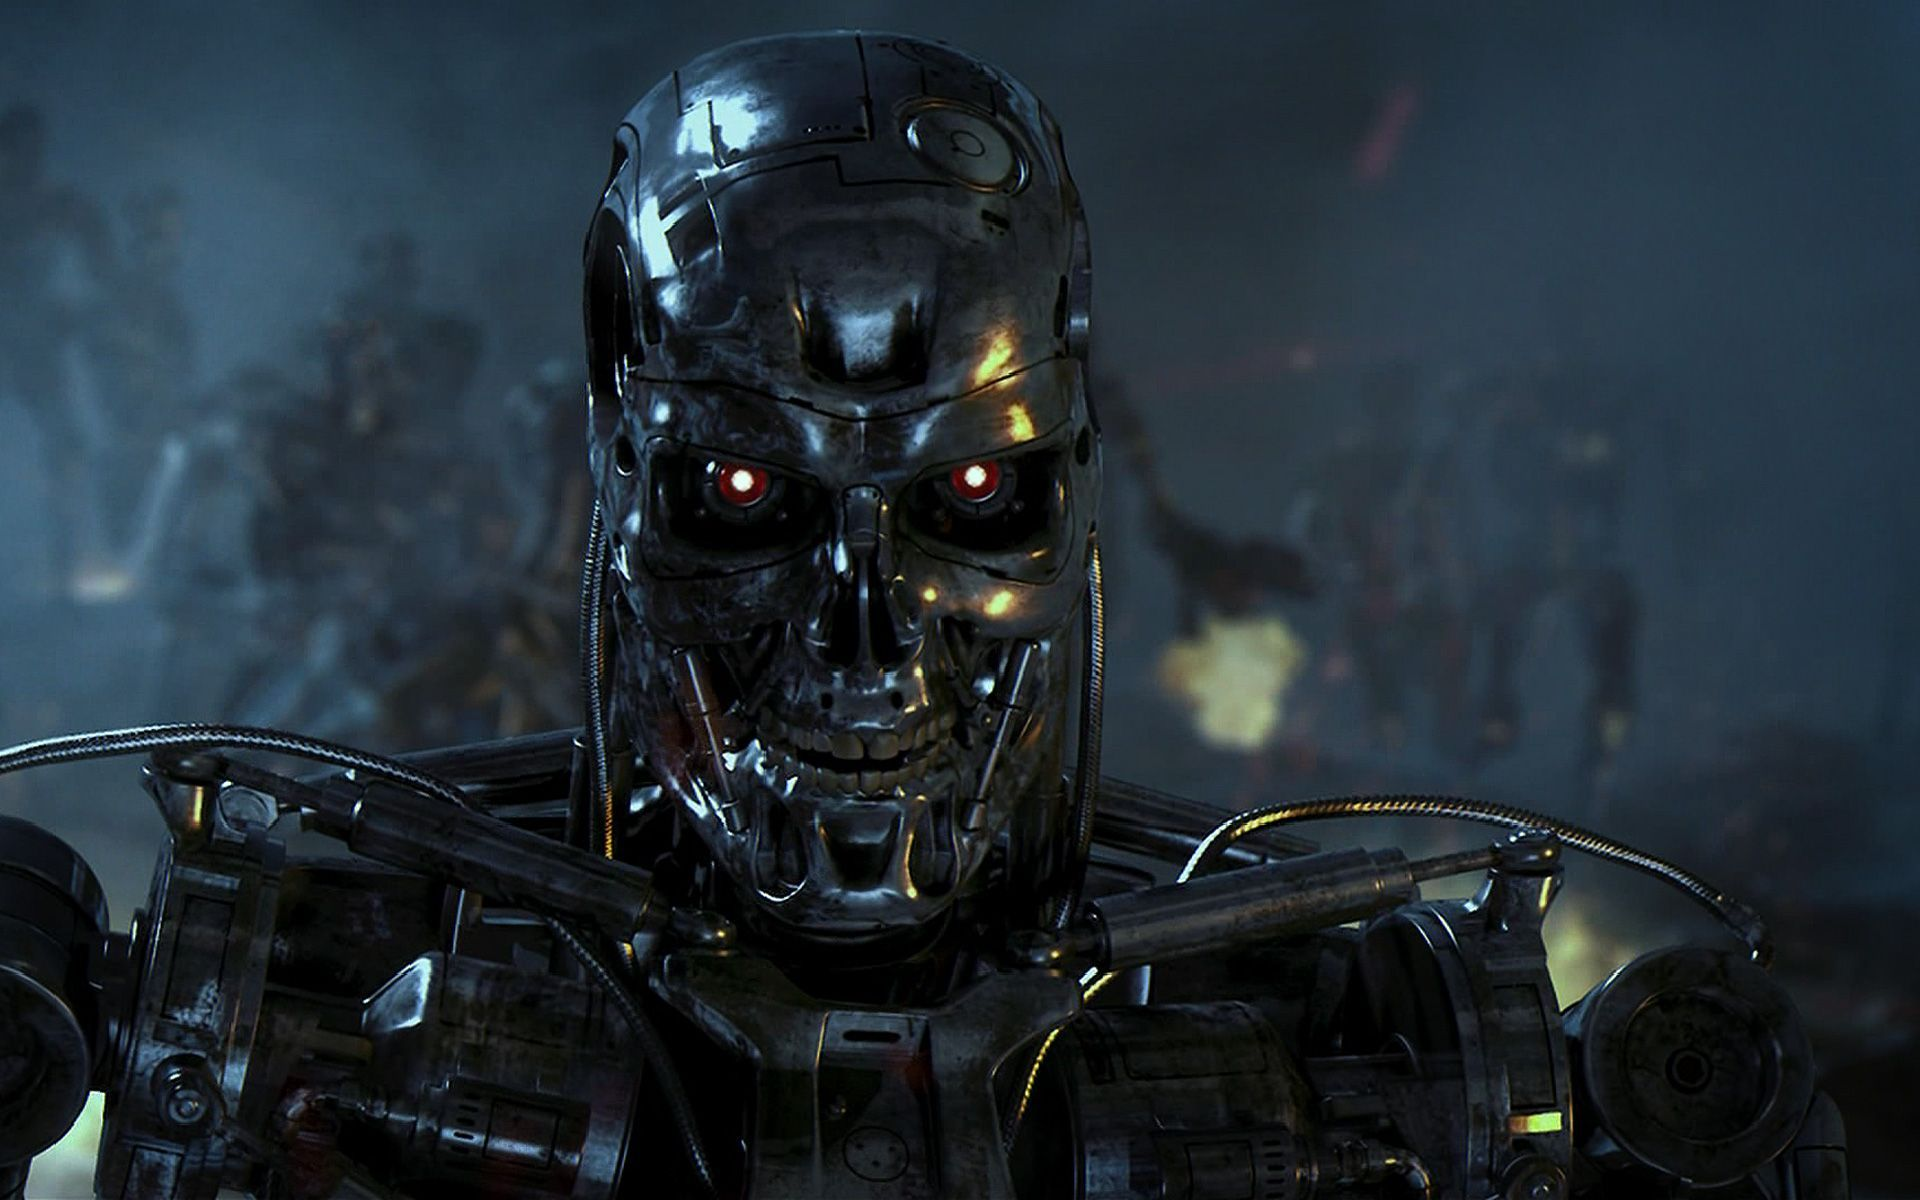 28 Fresh Terminator Wallpapers CYC48 High Resolution Wallpapers 1920x1200